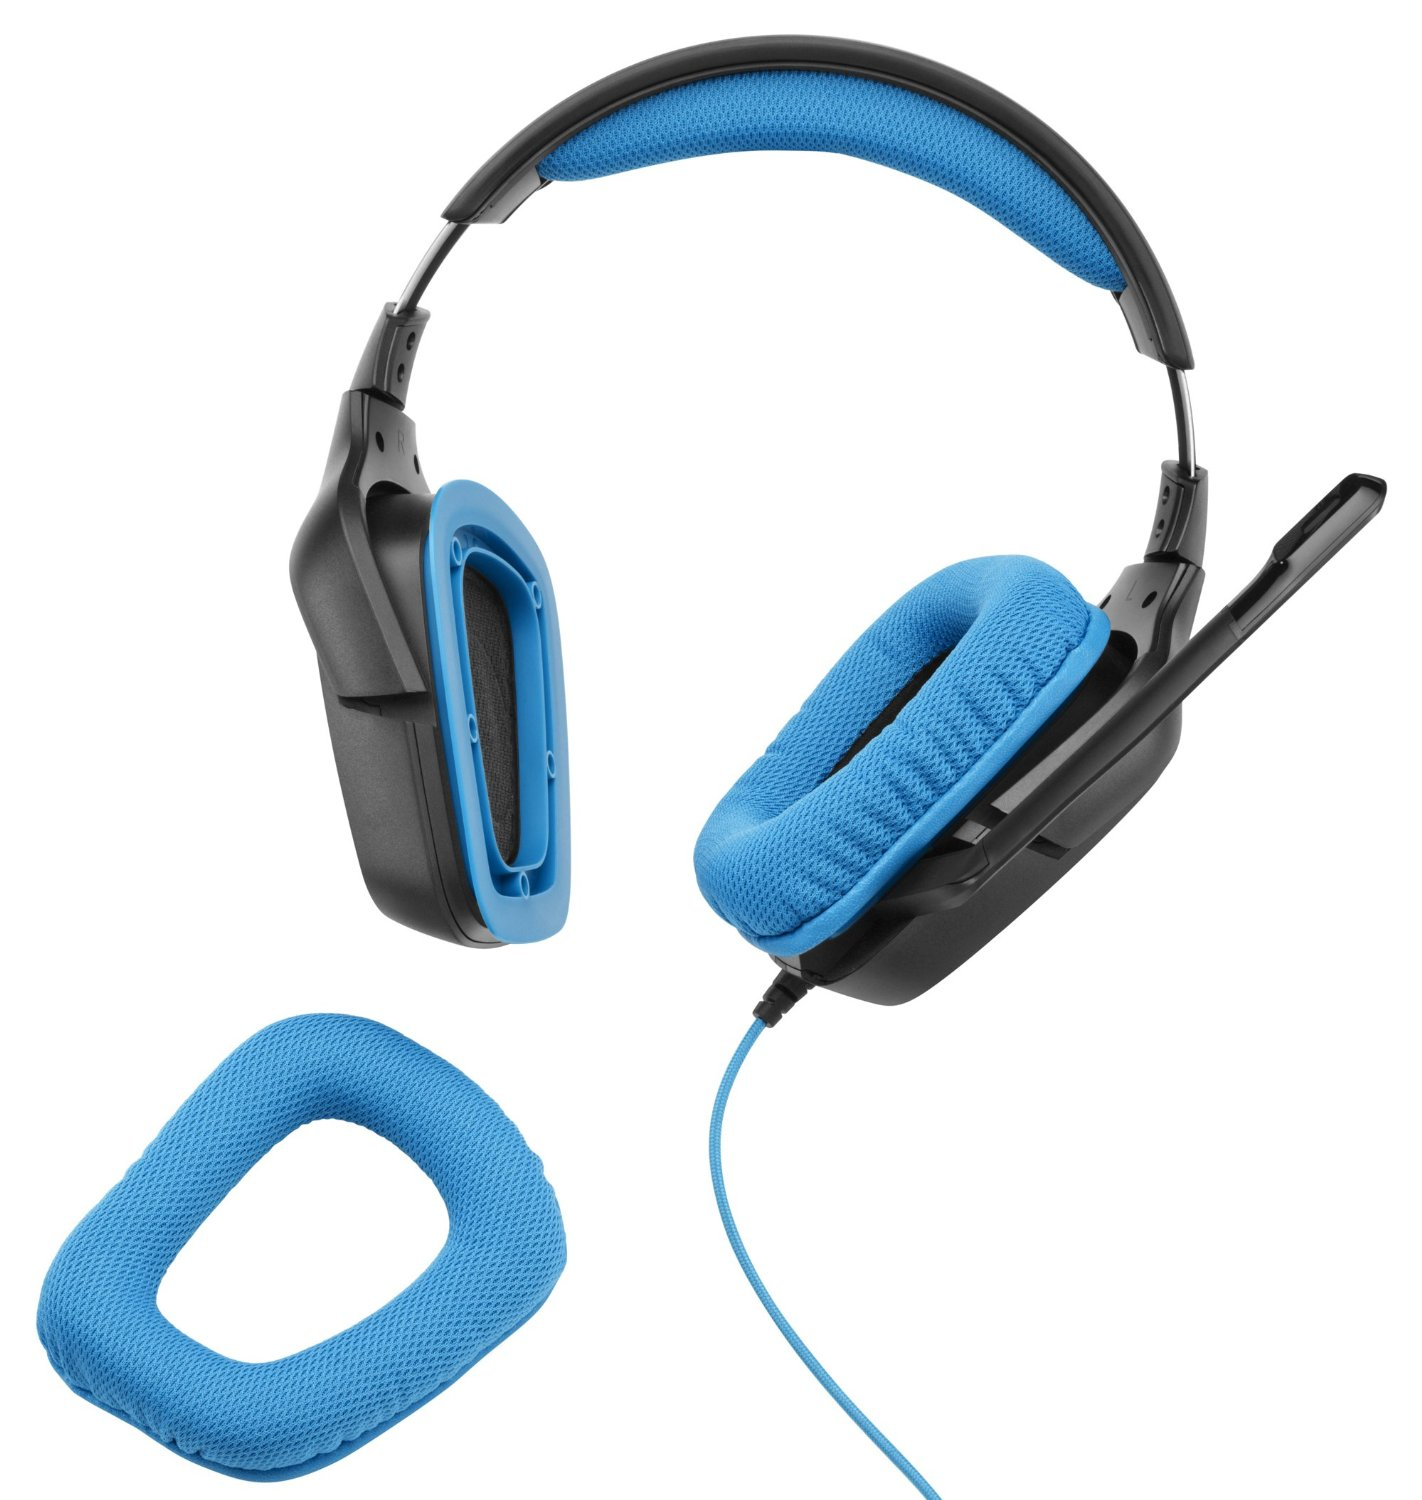 c692f264040 Logitech G430 Surround Sound Gaming Headset with Dolby 7.1 Technology-in  Mouse Pads from Computer & Office on Aliexpress.com | Alibaba Group